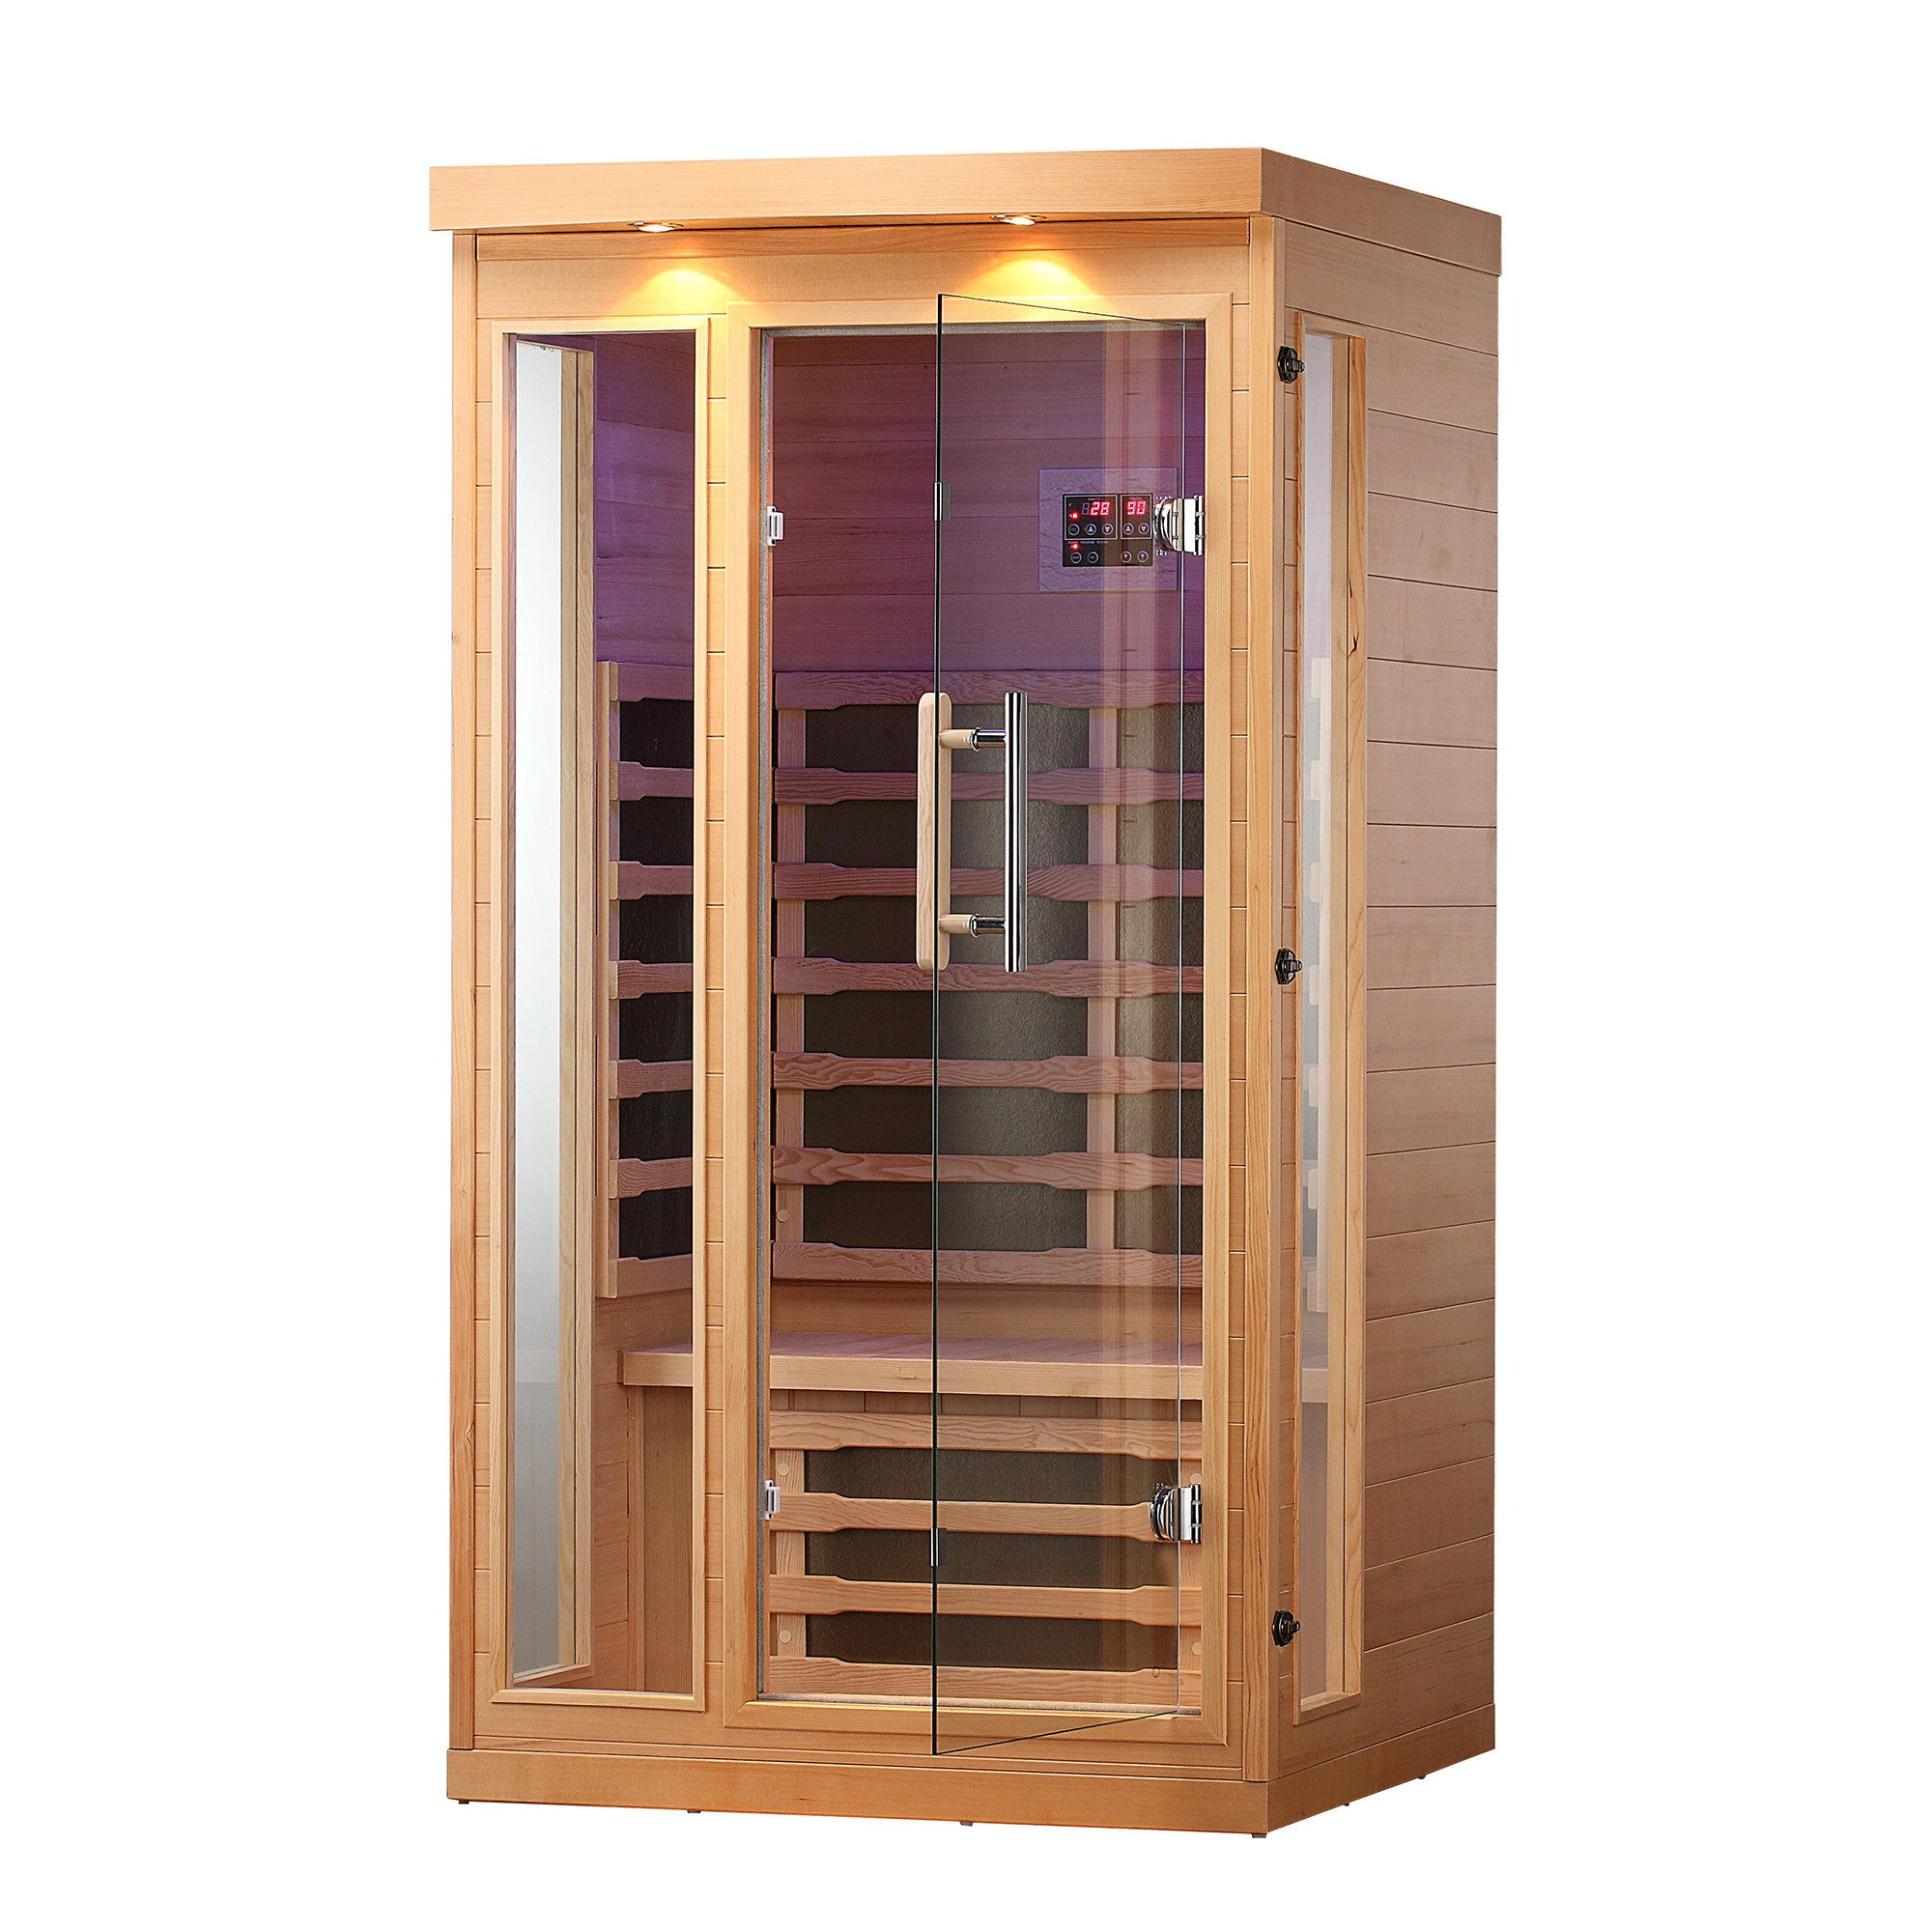 chilliwack 1 person far infrared sauna canadian spa company us. Black Bedroom Furniture Sets. Home Design Ideas